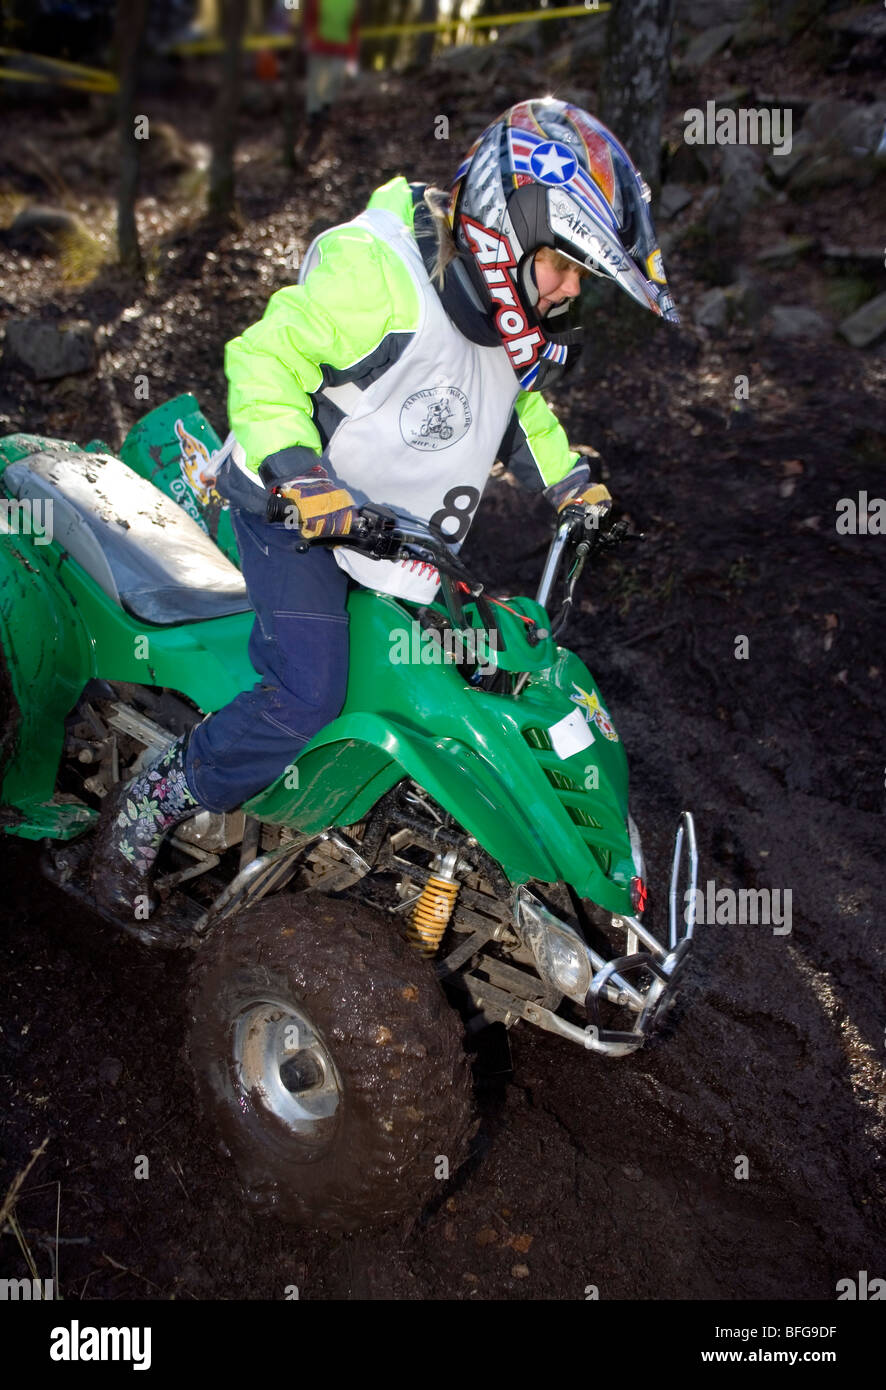 Yong girl in full protective wear rides downhill all-terrain vehicle - Stock Image